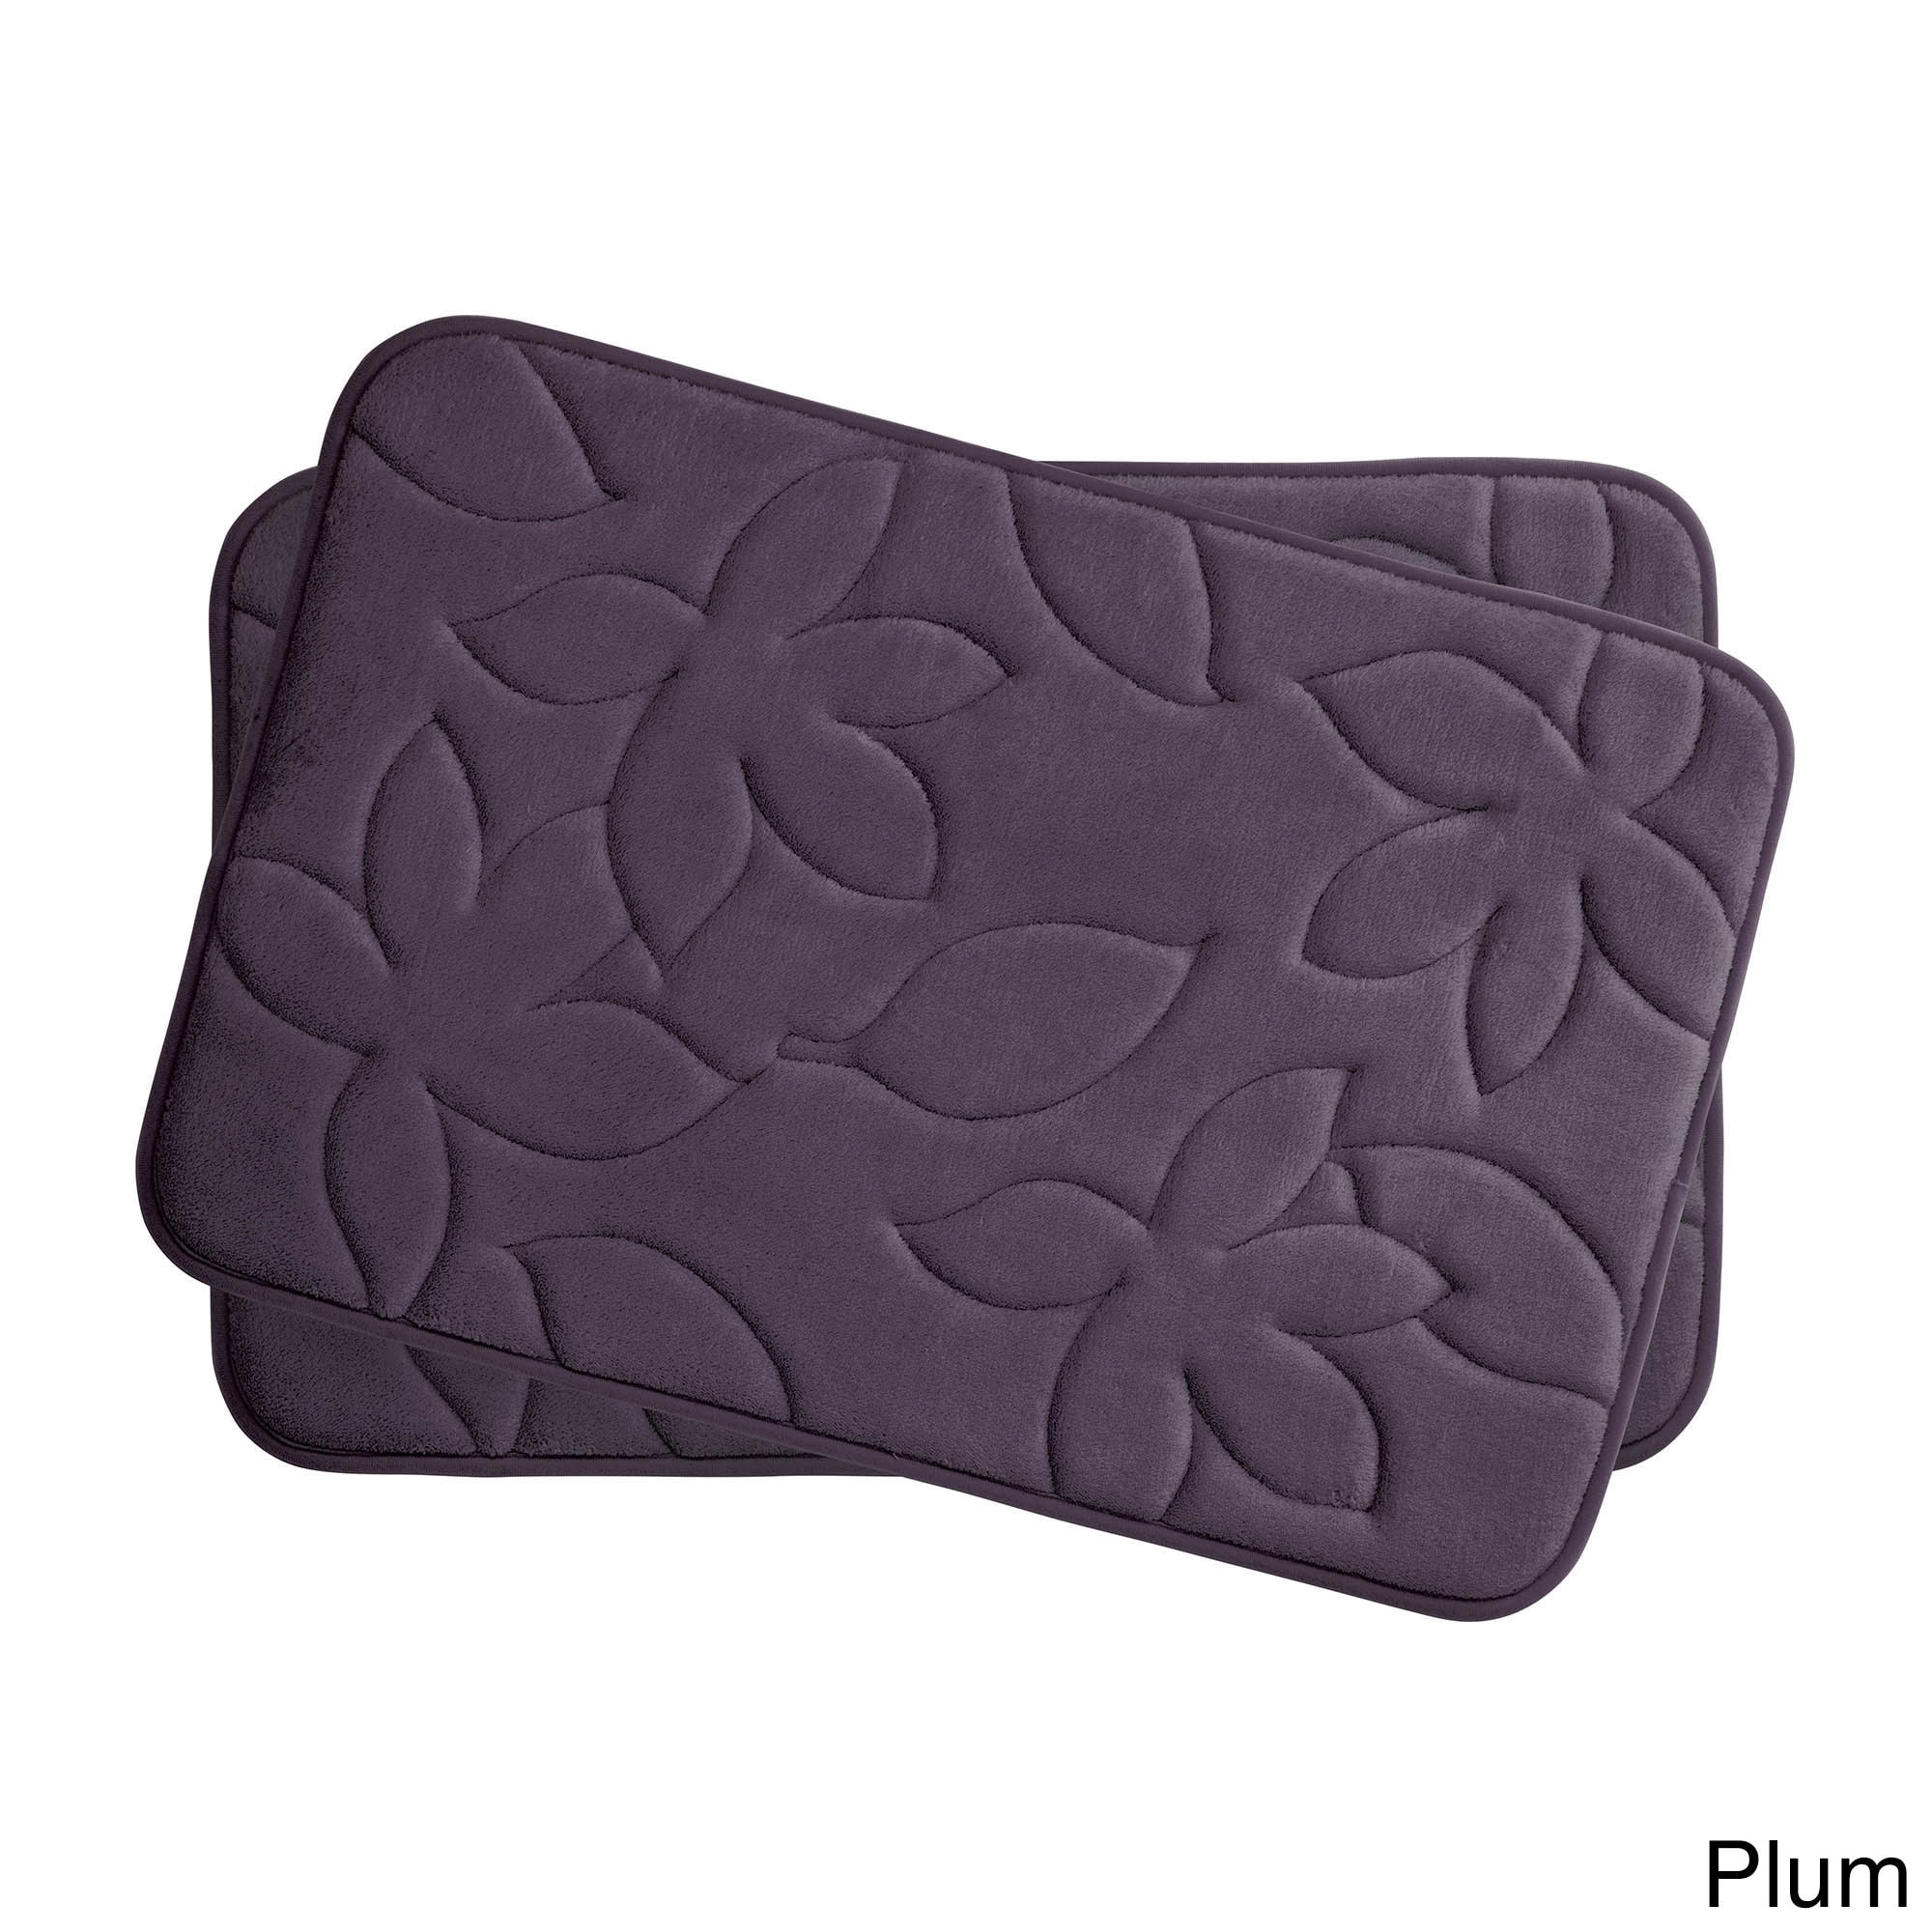 Blowing Leaves Memory Foam 2 Piece Bath Mat Set With